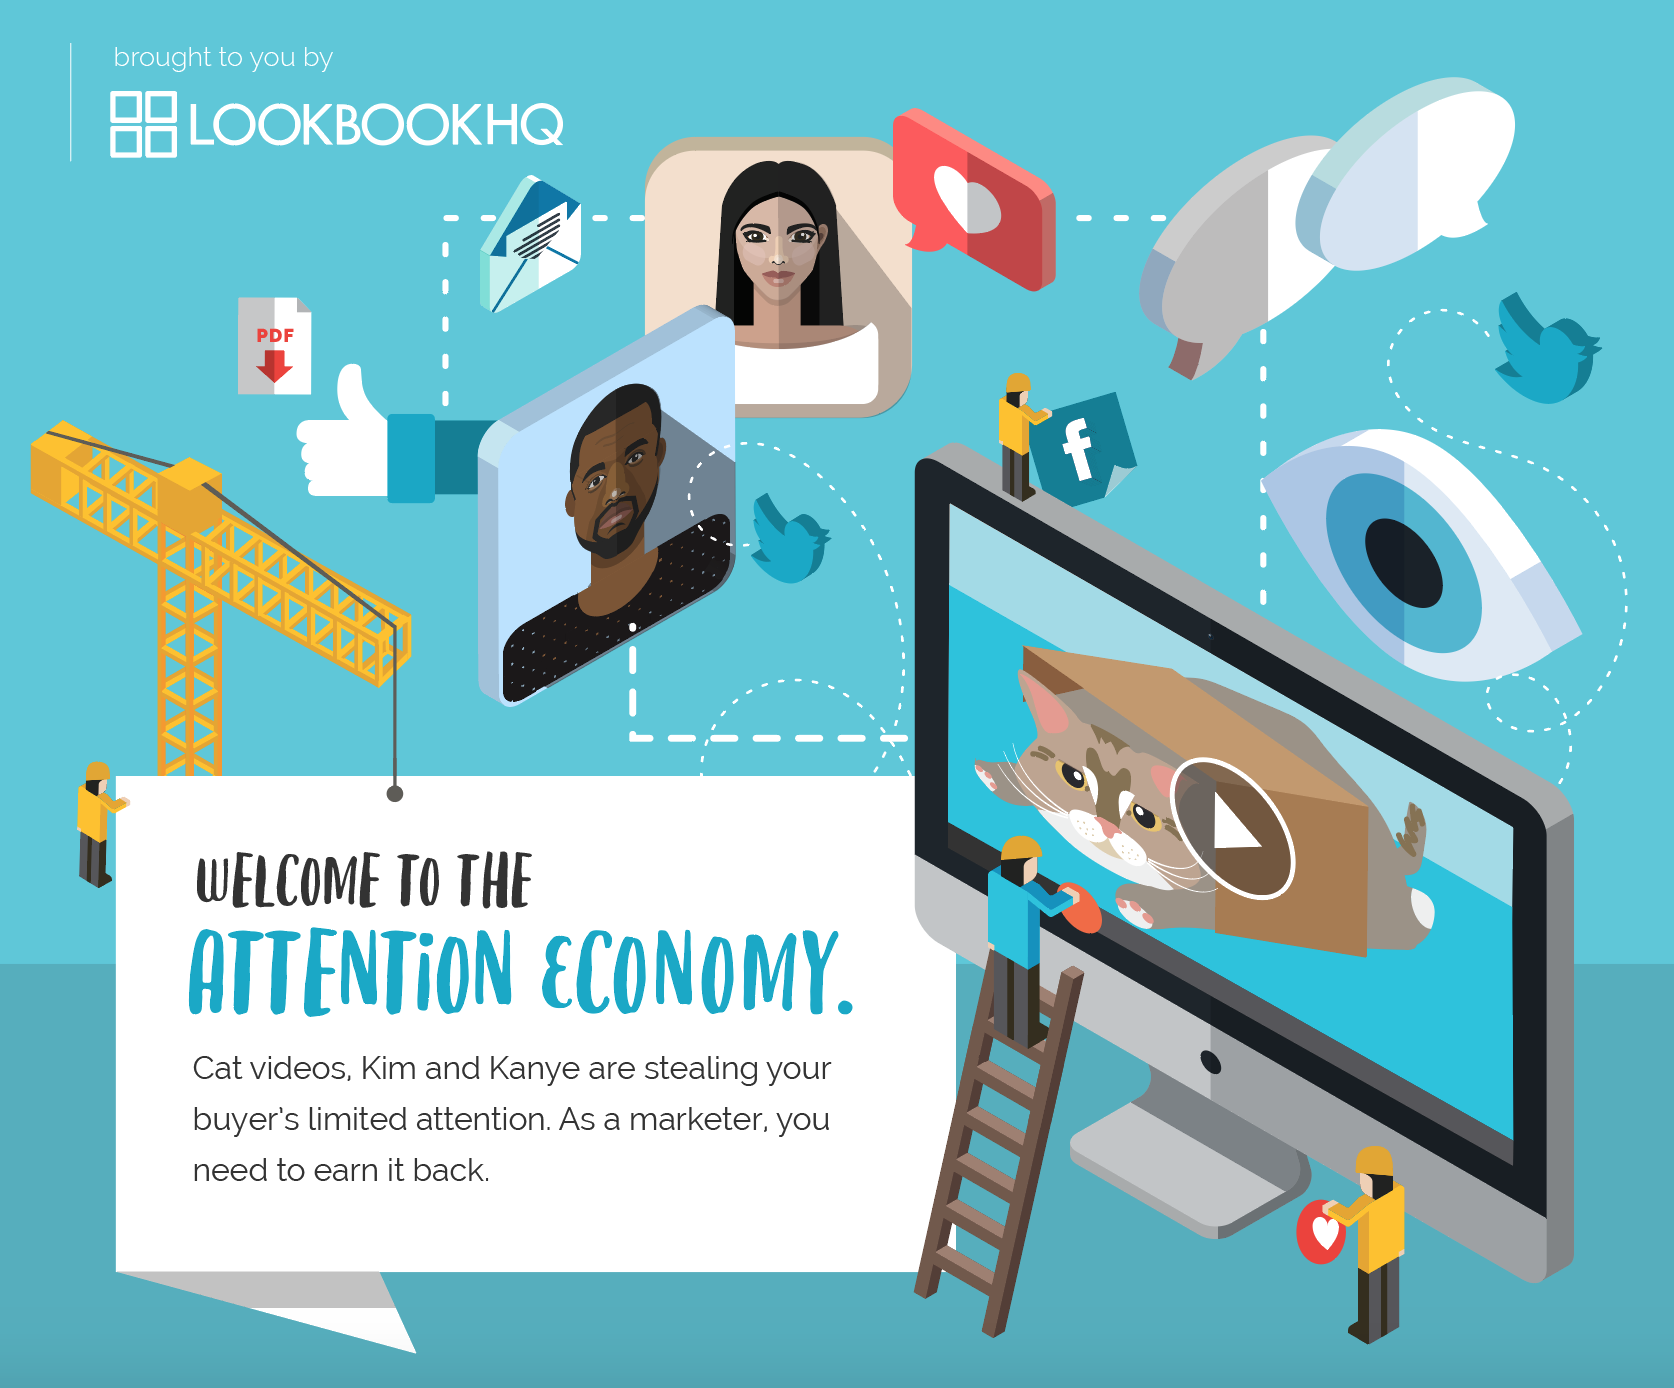 "A screenshot of the infographic's title that reads ""Welcome to the Attention Economy"" and shows cartoons representing Kanye West, Kim Kardashian, social medias and a cute cat video."